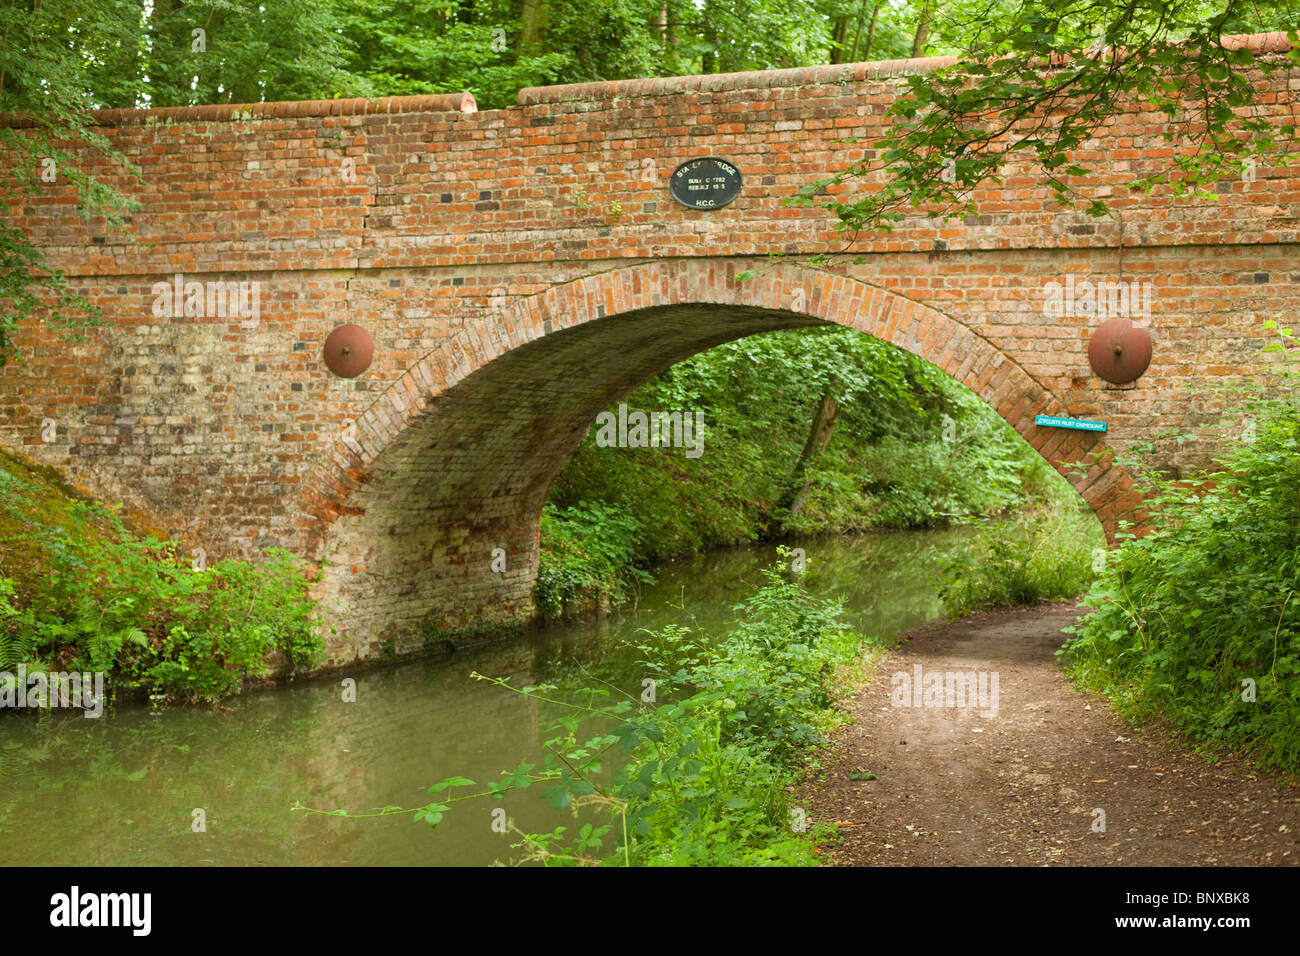 The Basingstoke Canal, near Dogmersfield, Hampshire, England - Stock Image